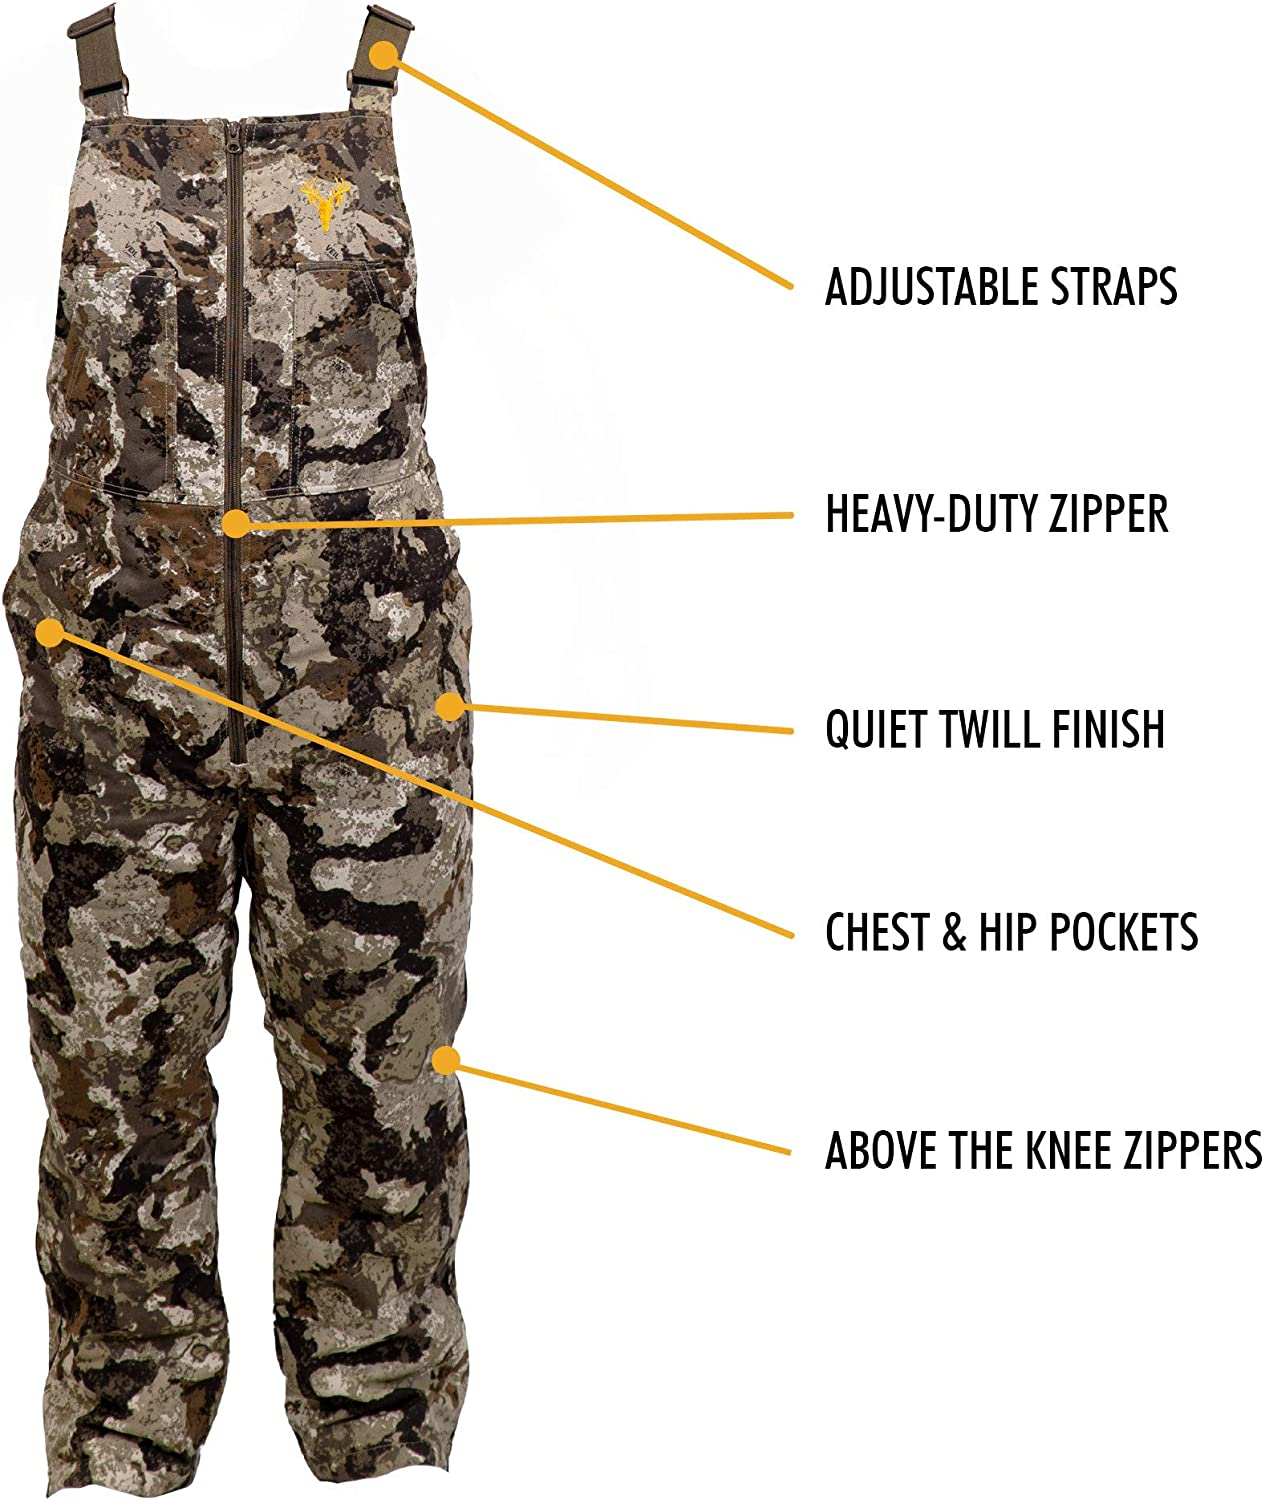 HOT SHOT Youth Insulated Camo Bib Adjustable Height Leg Zippers Designed for All Day Comfort